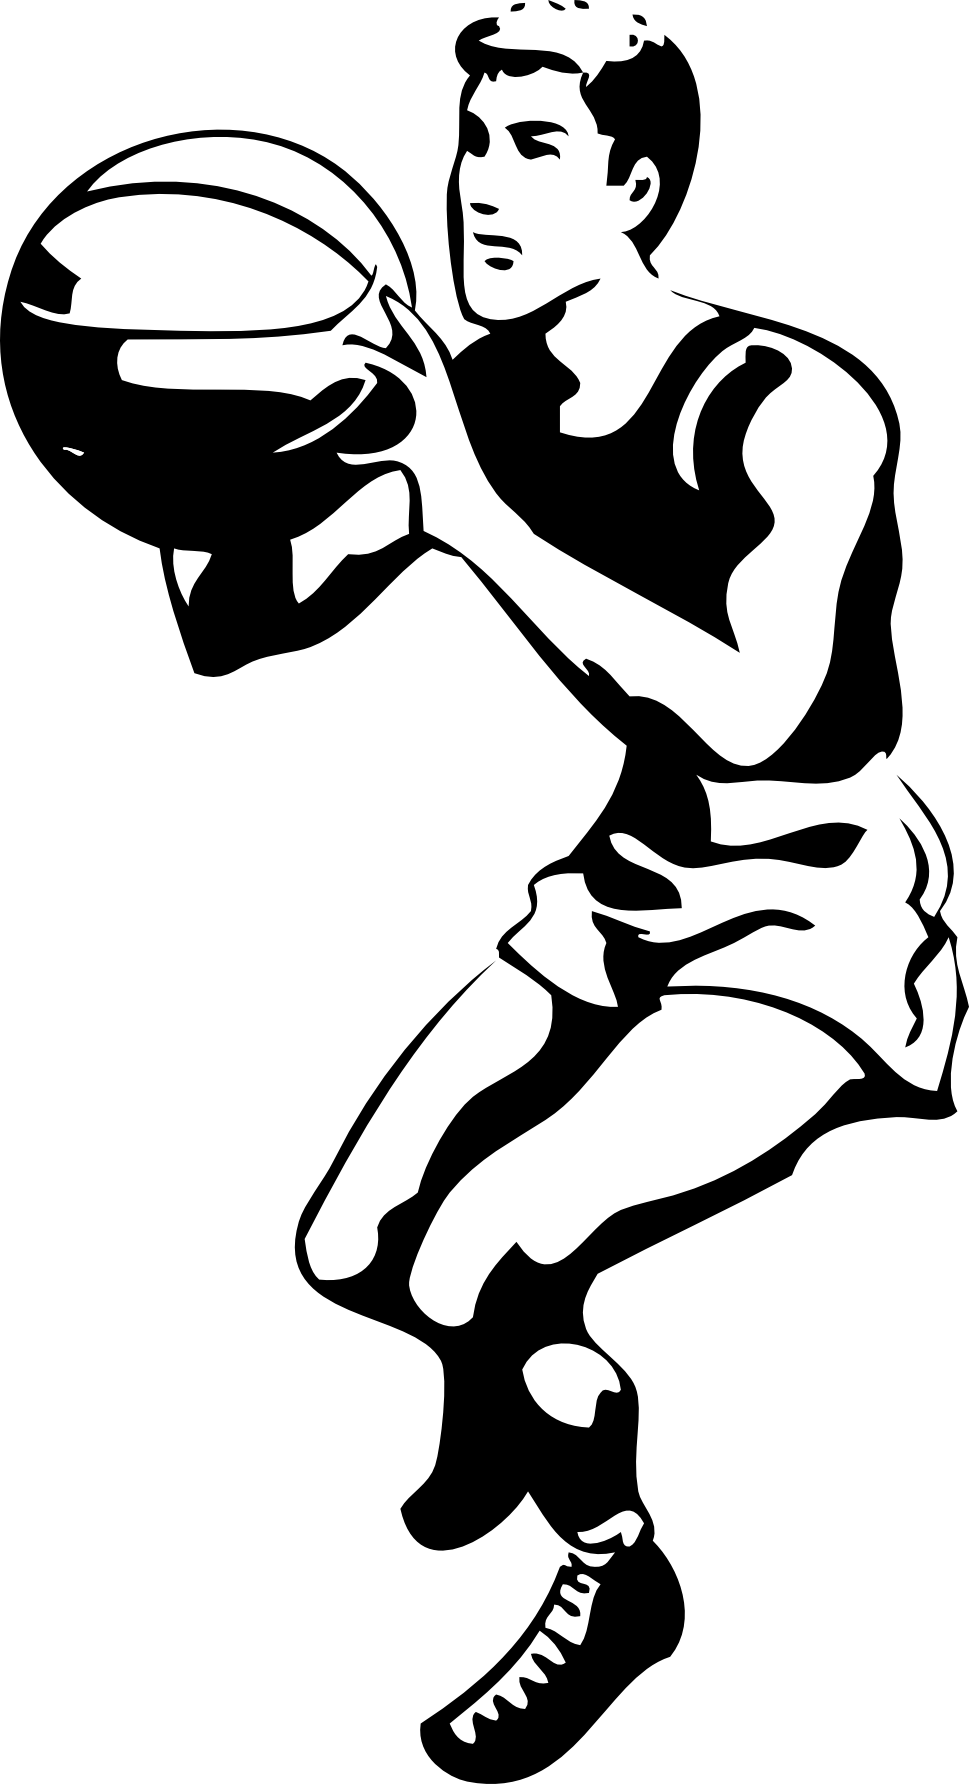 Basketball Clipart Black And White Widescreen 2 HD.